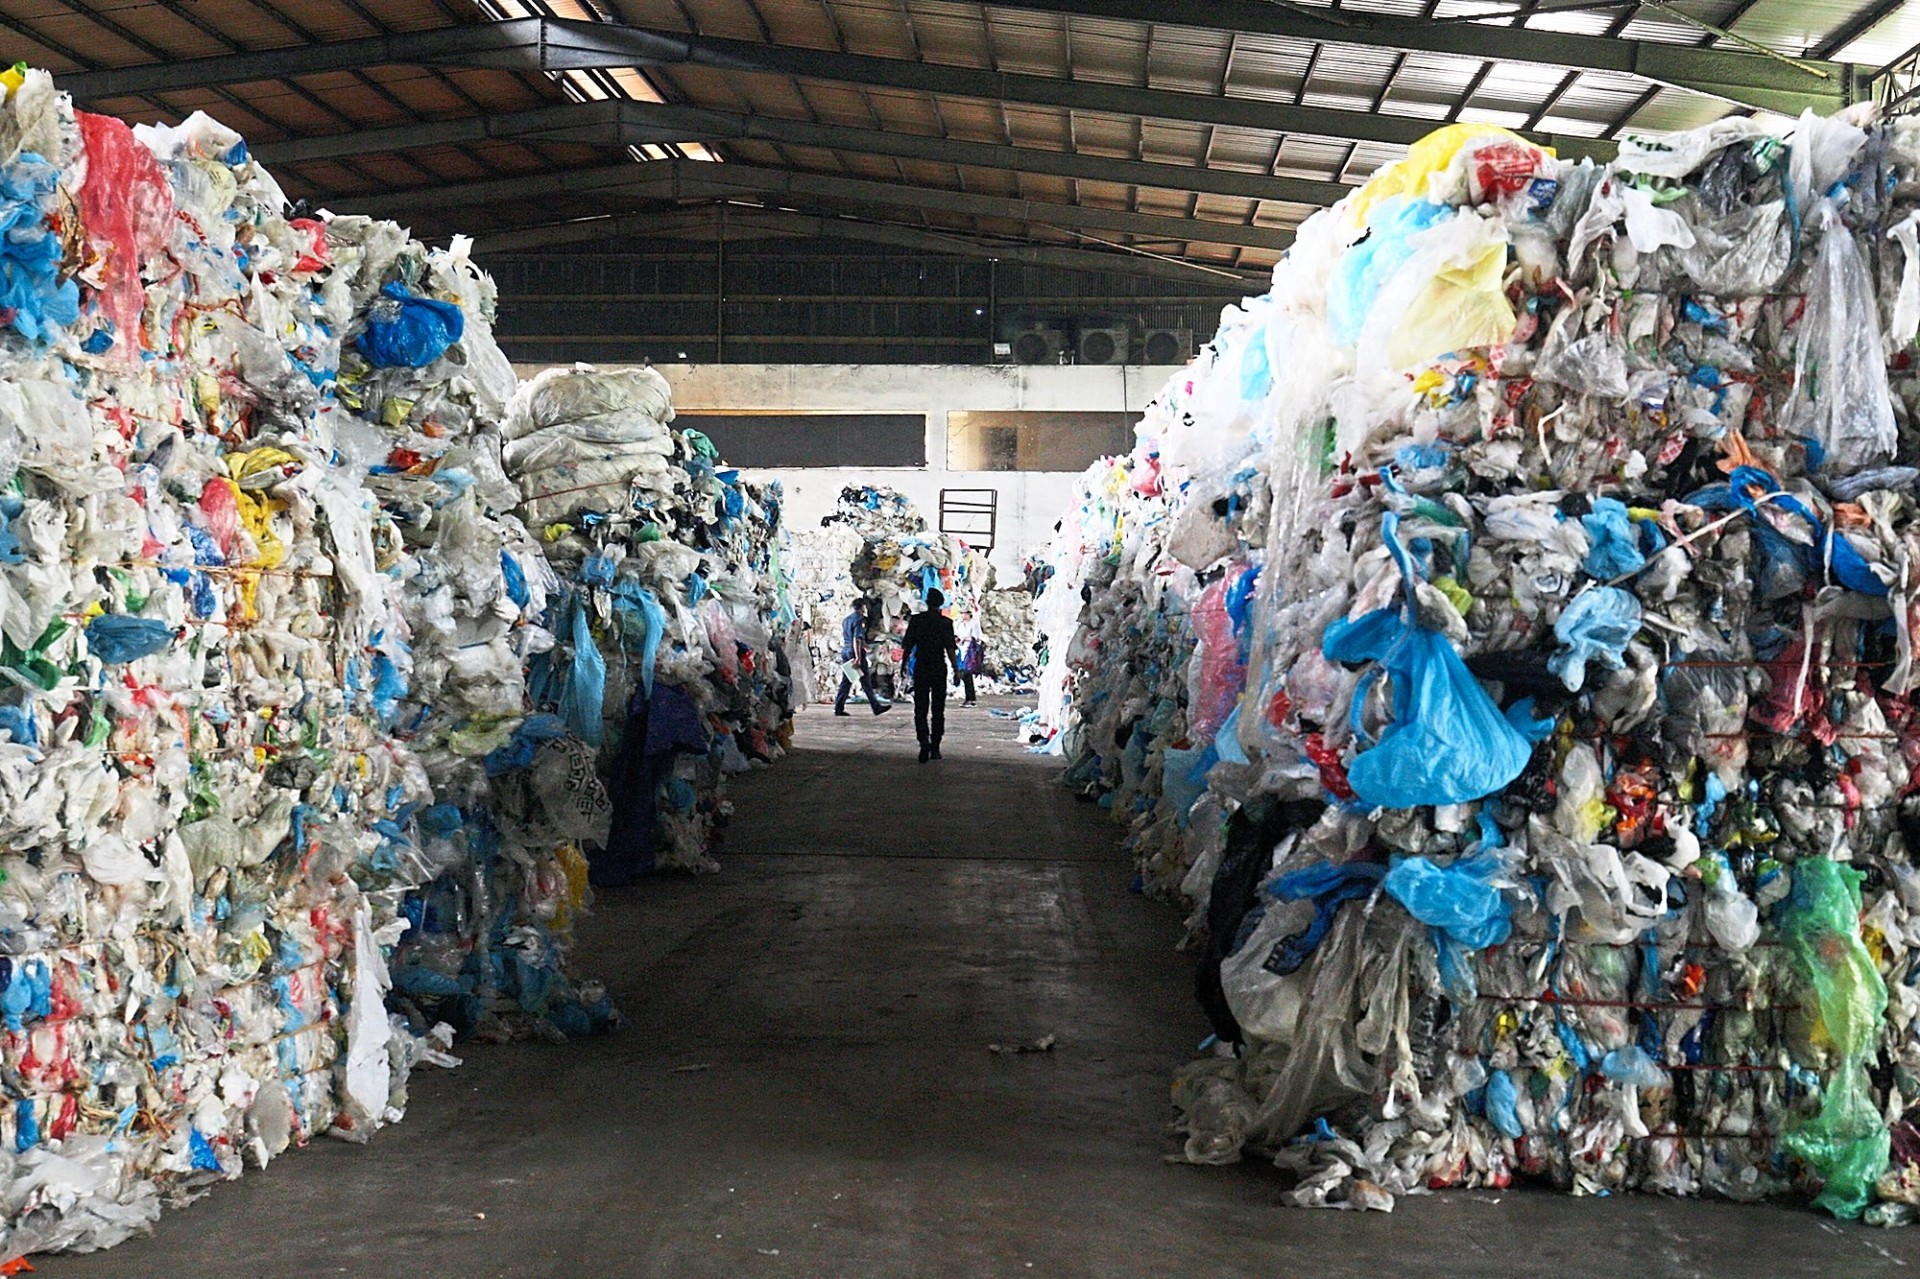 While recycling helps reduce the amount of rubbish headed to landfills, there is still too much being discarded. Waste-to-energy technology is touted as a sustainable option in waste management. — Filepic